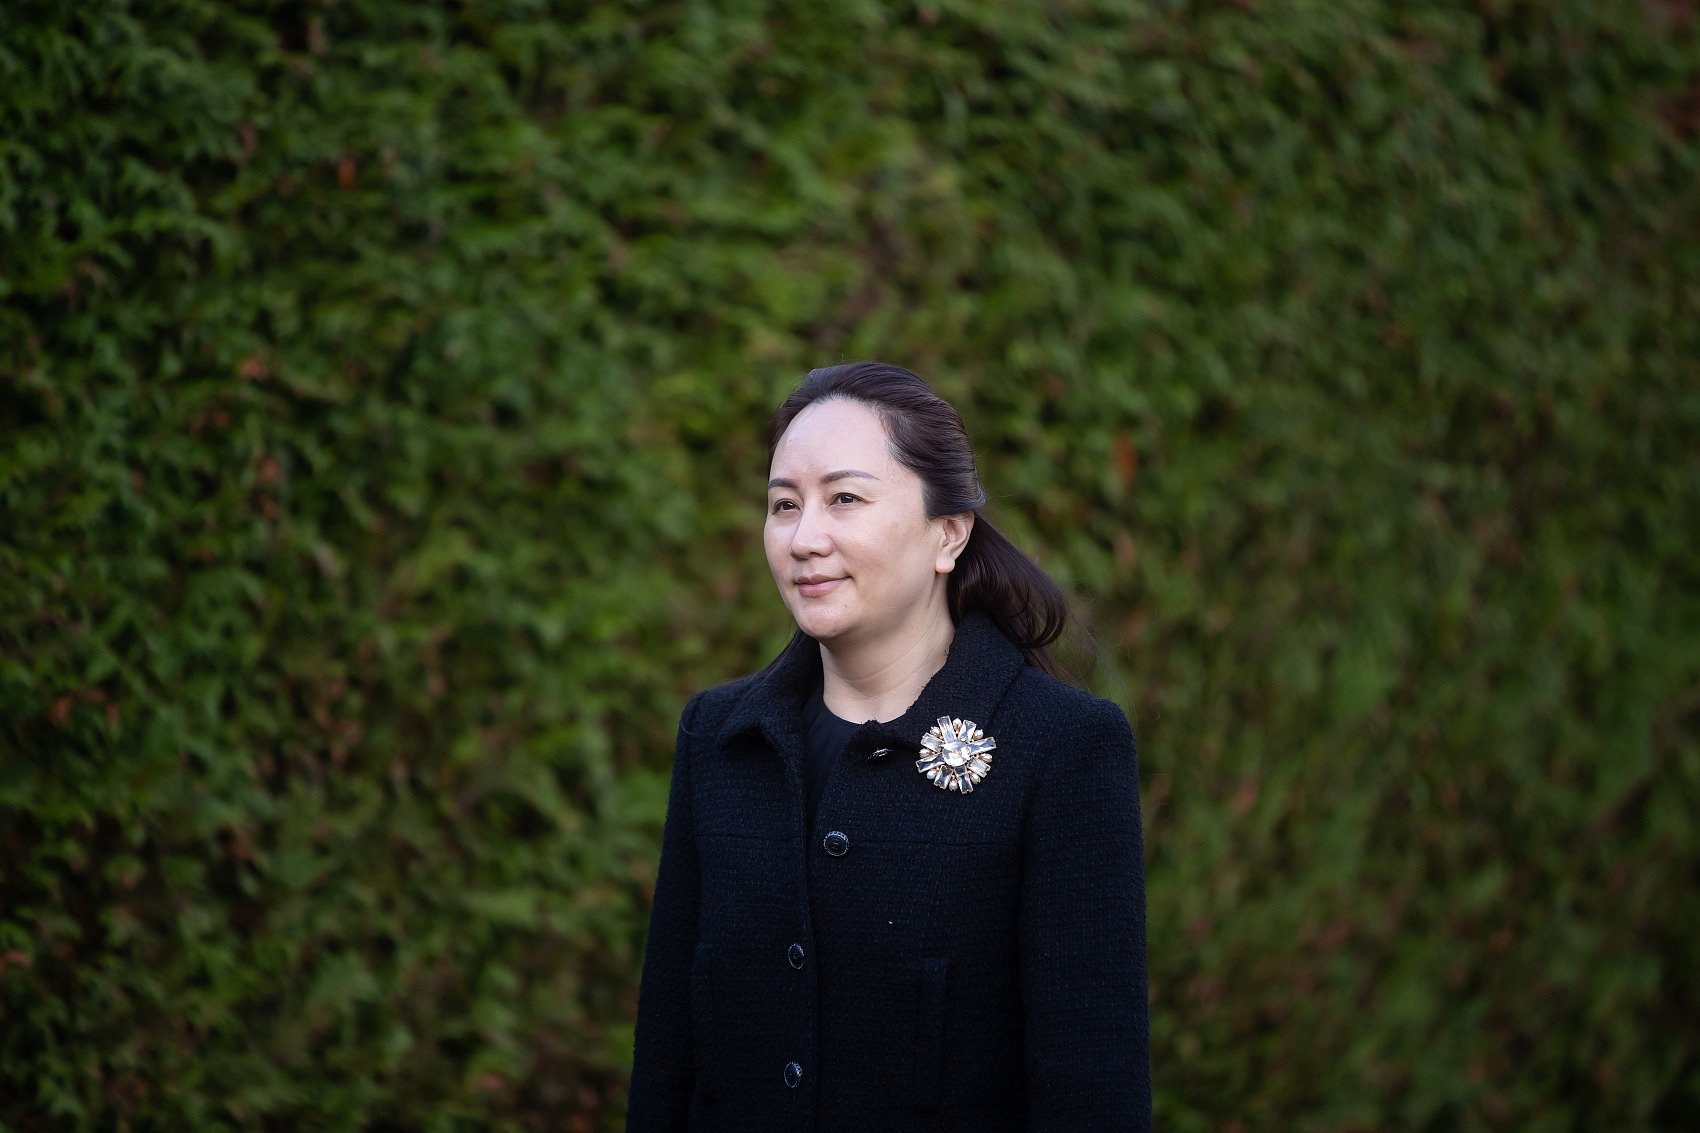 Meng Wanzhou case remains political despite Canada's attempts to cover up facts: FM spokesperson